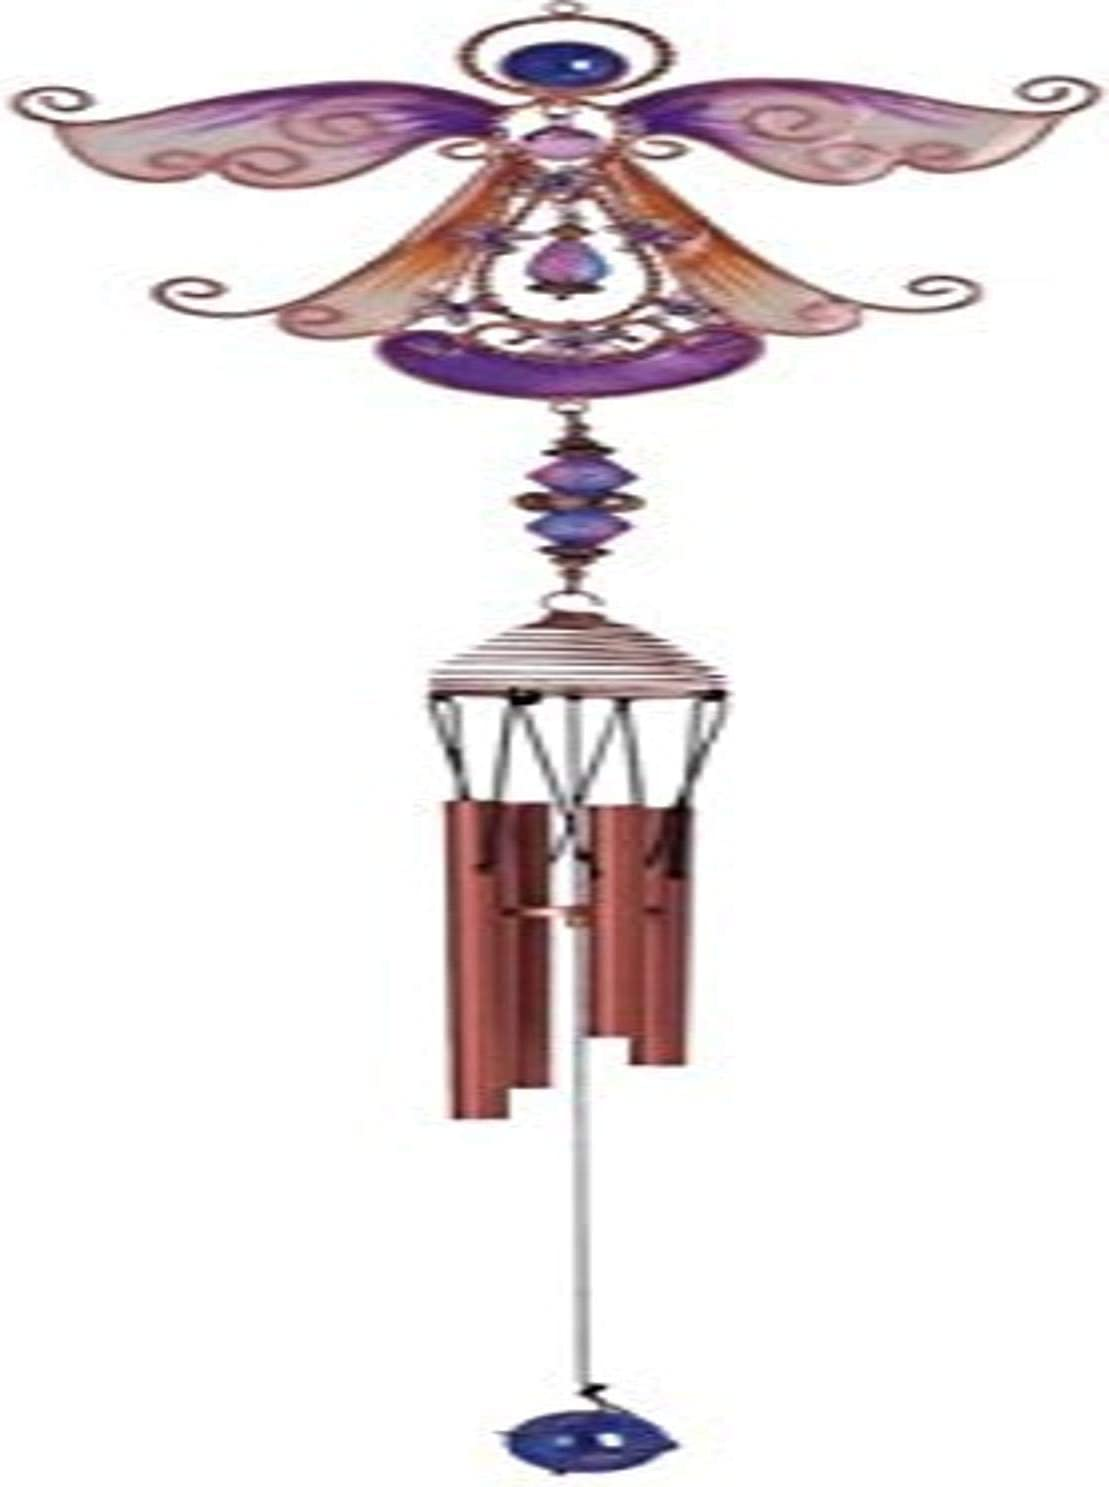 StealStreet SS-G-99890 Wind Chime Copper and Gem Angel Garden Decoration Hanging Porch Decor